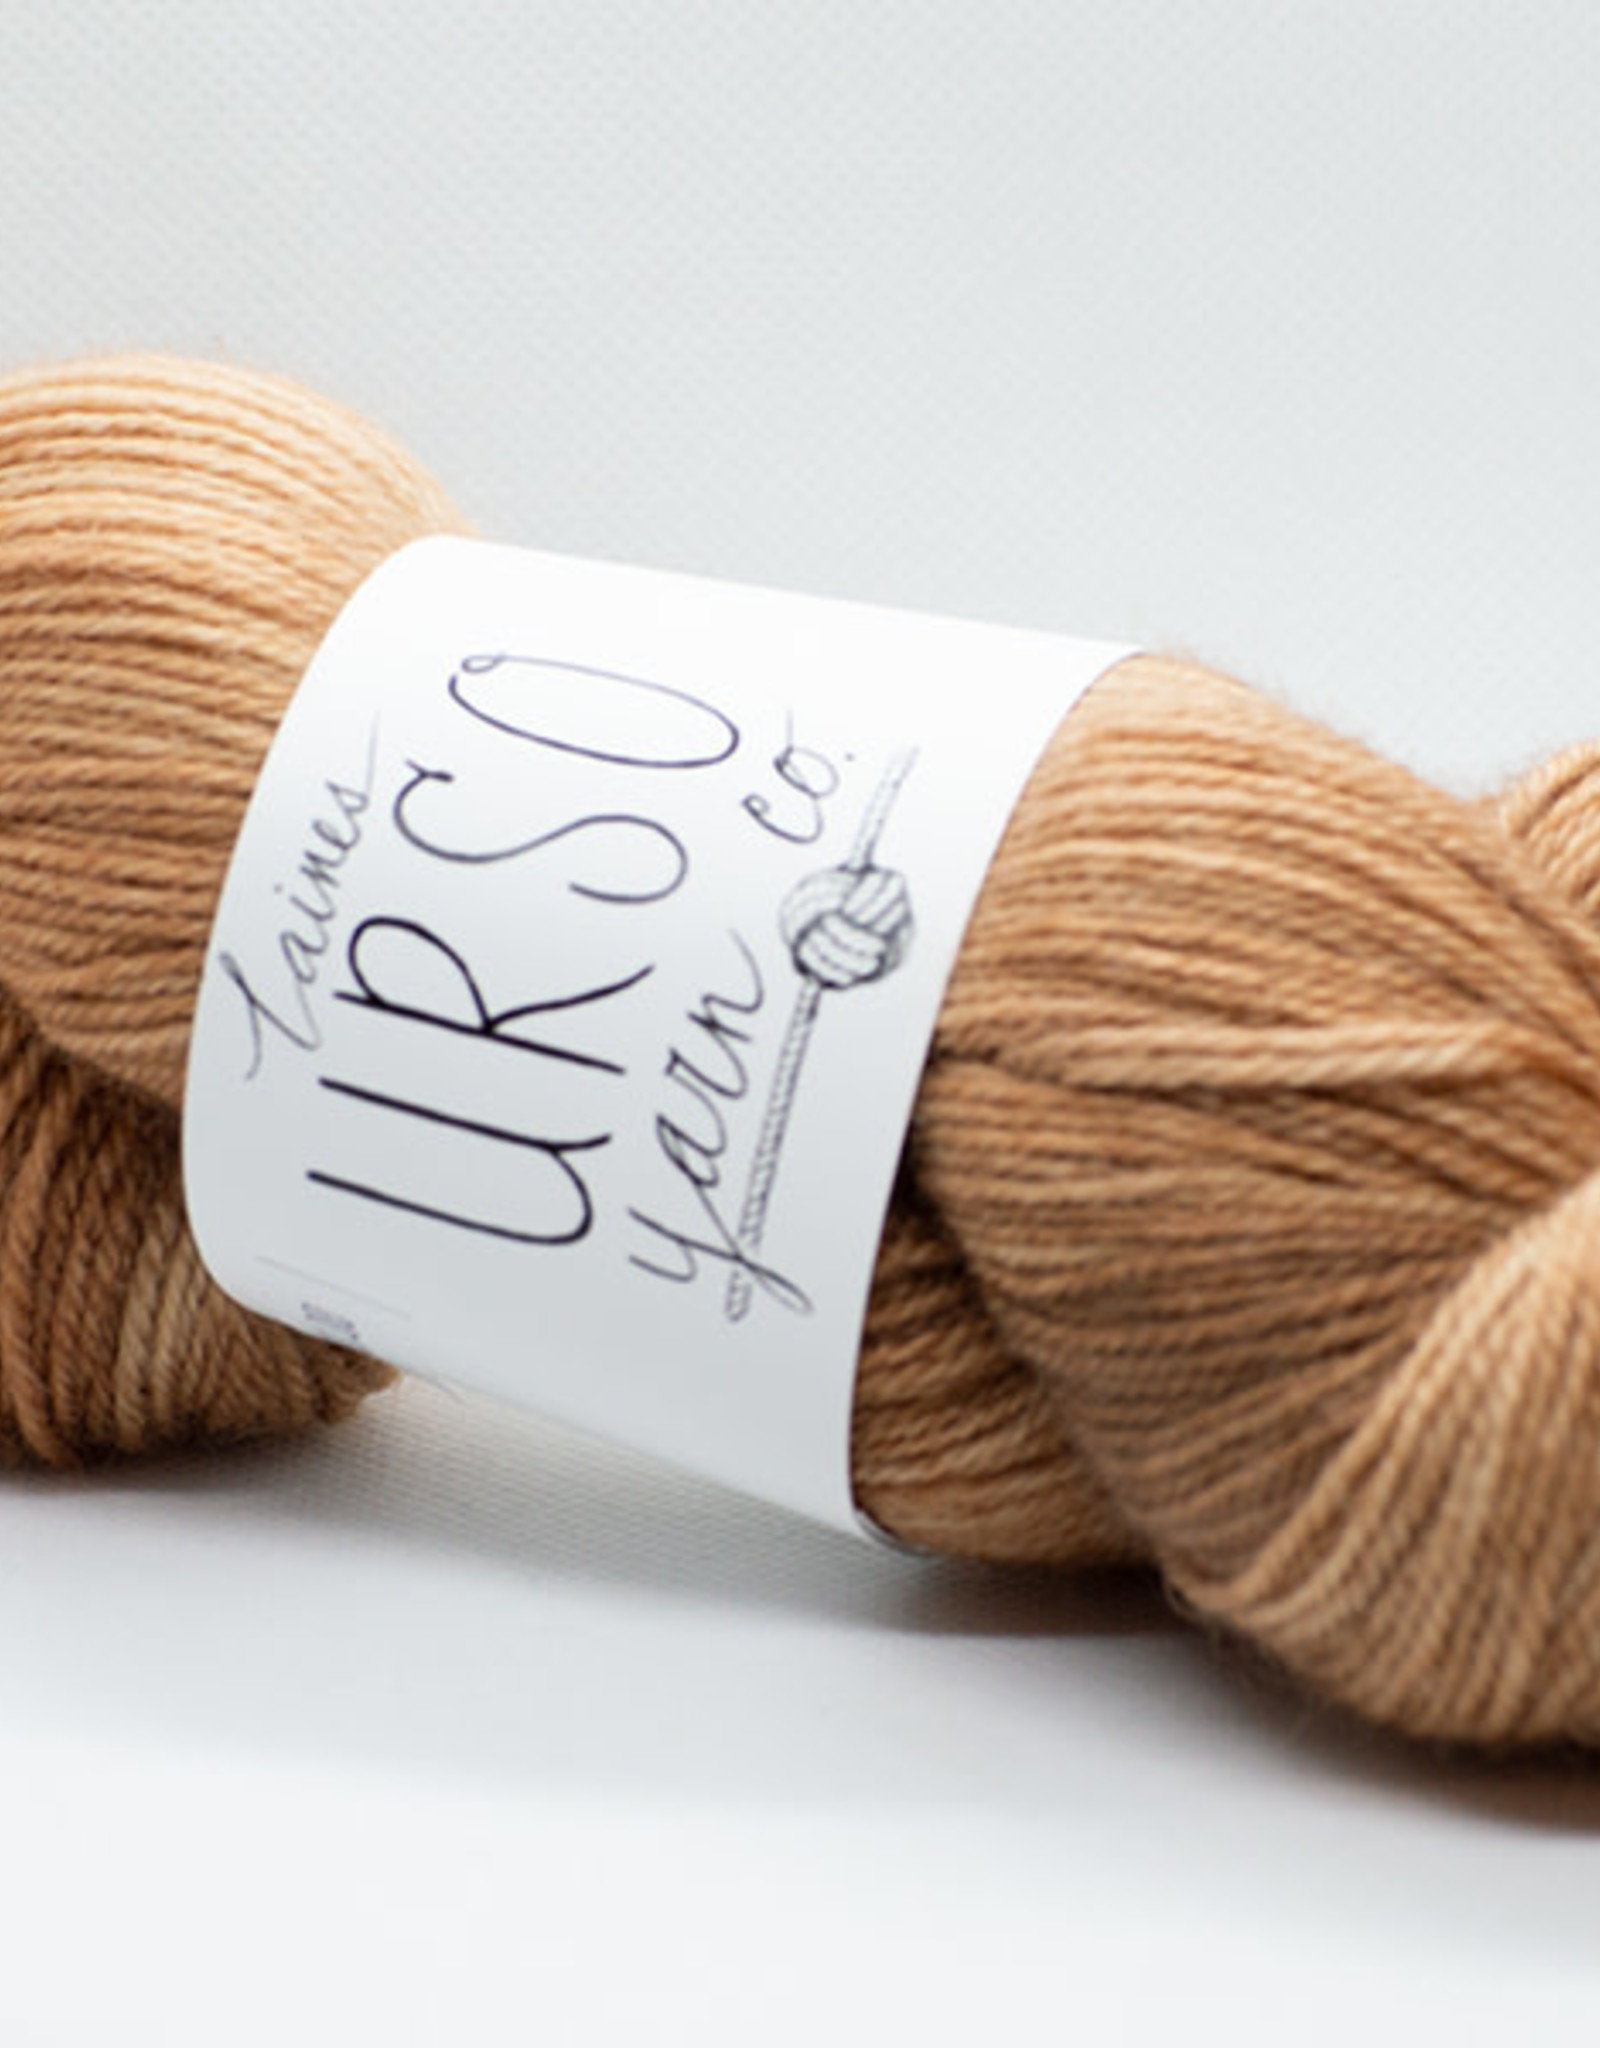 Urso Yarn Co Urso Yarn Co.